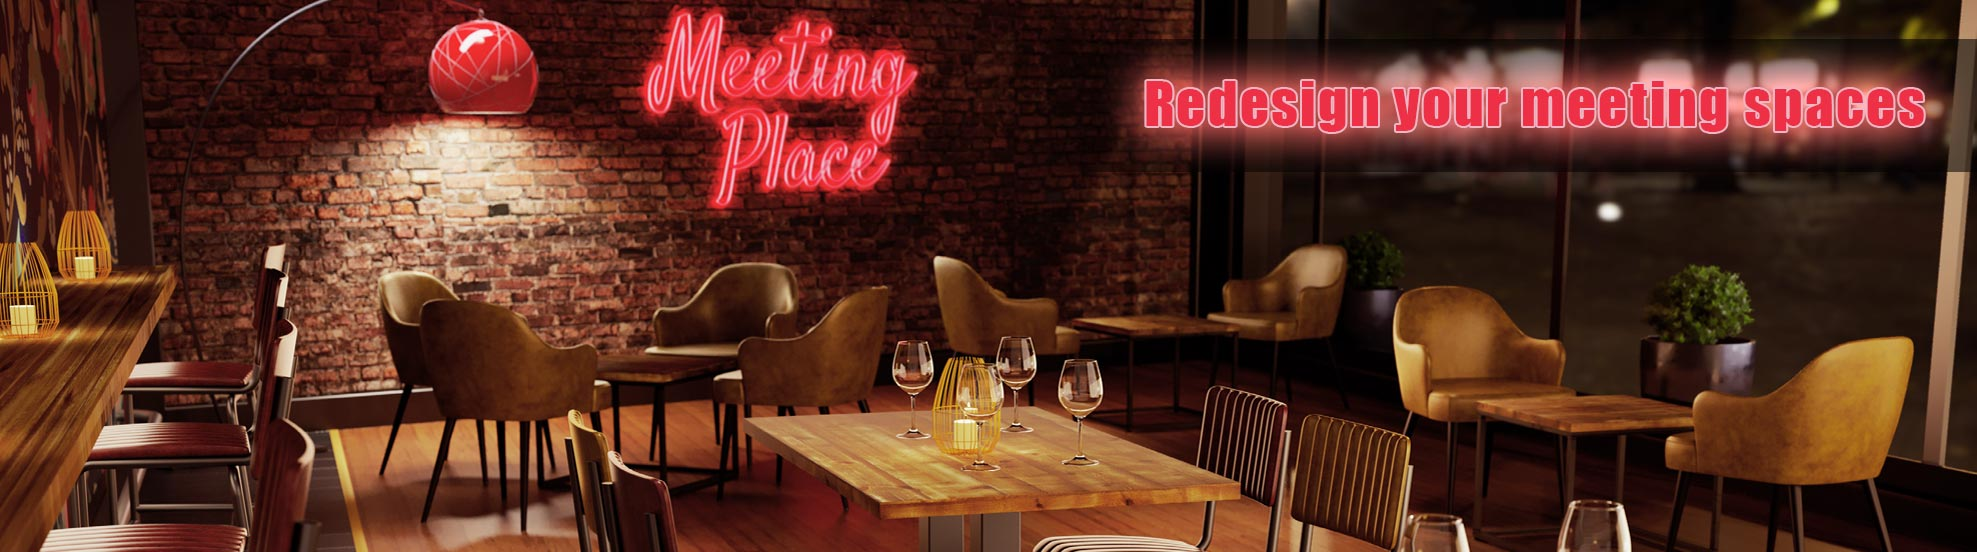 Redesign-your-meeting-spaces